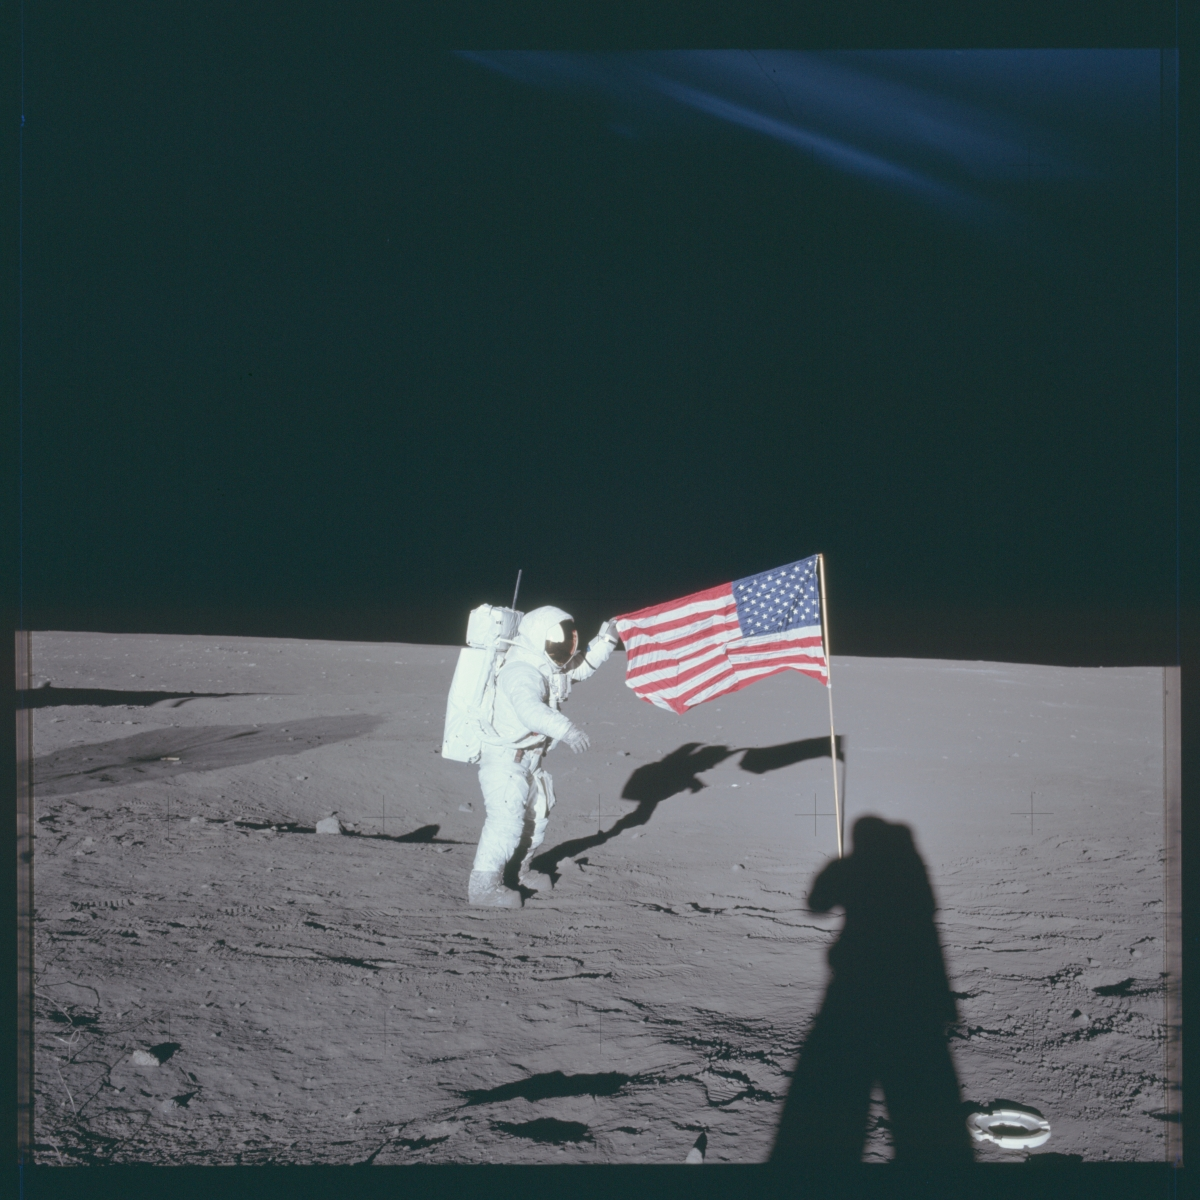 Nasa Apollo moon missions: Never-before-seen images